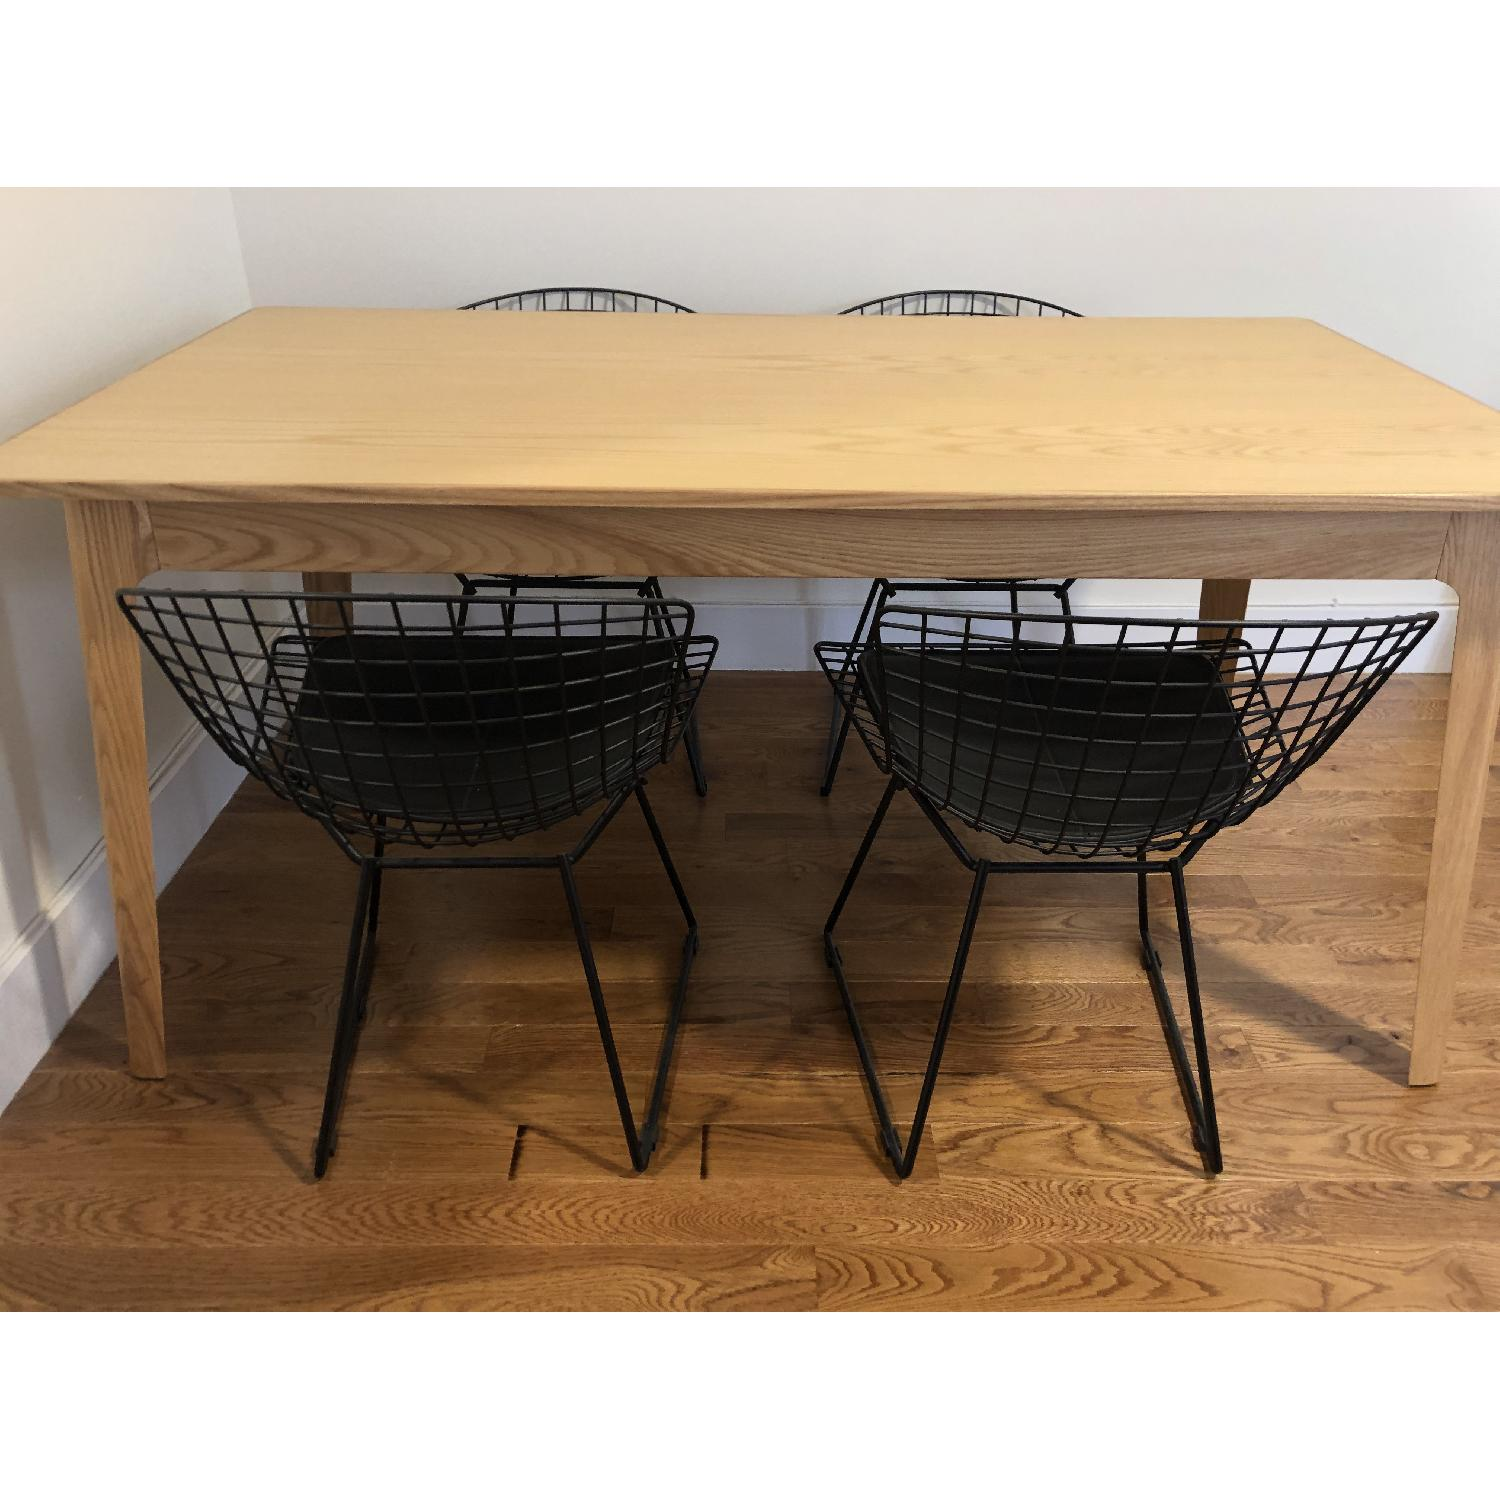 InMod Dining Table w/ 4 Chairs - image-1